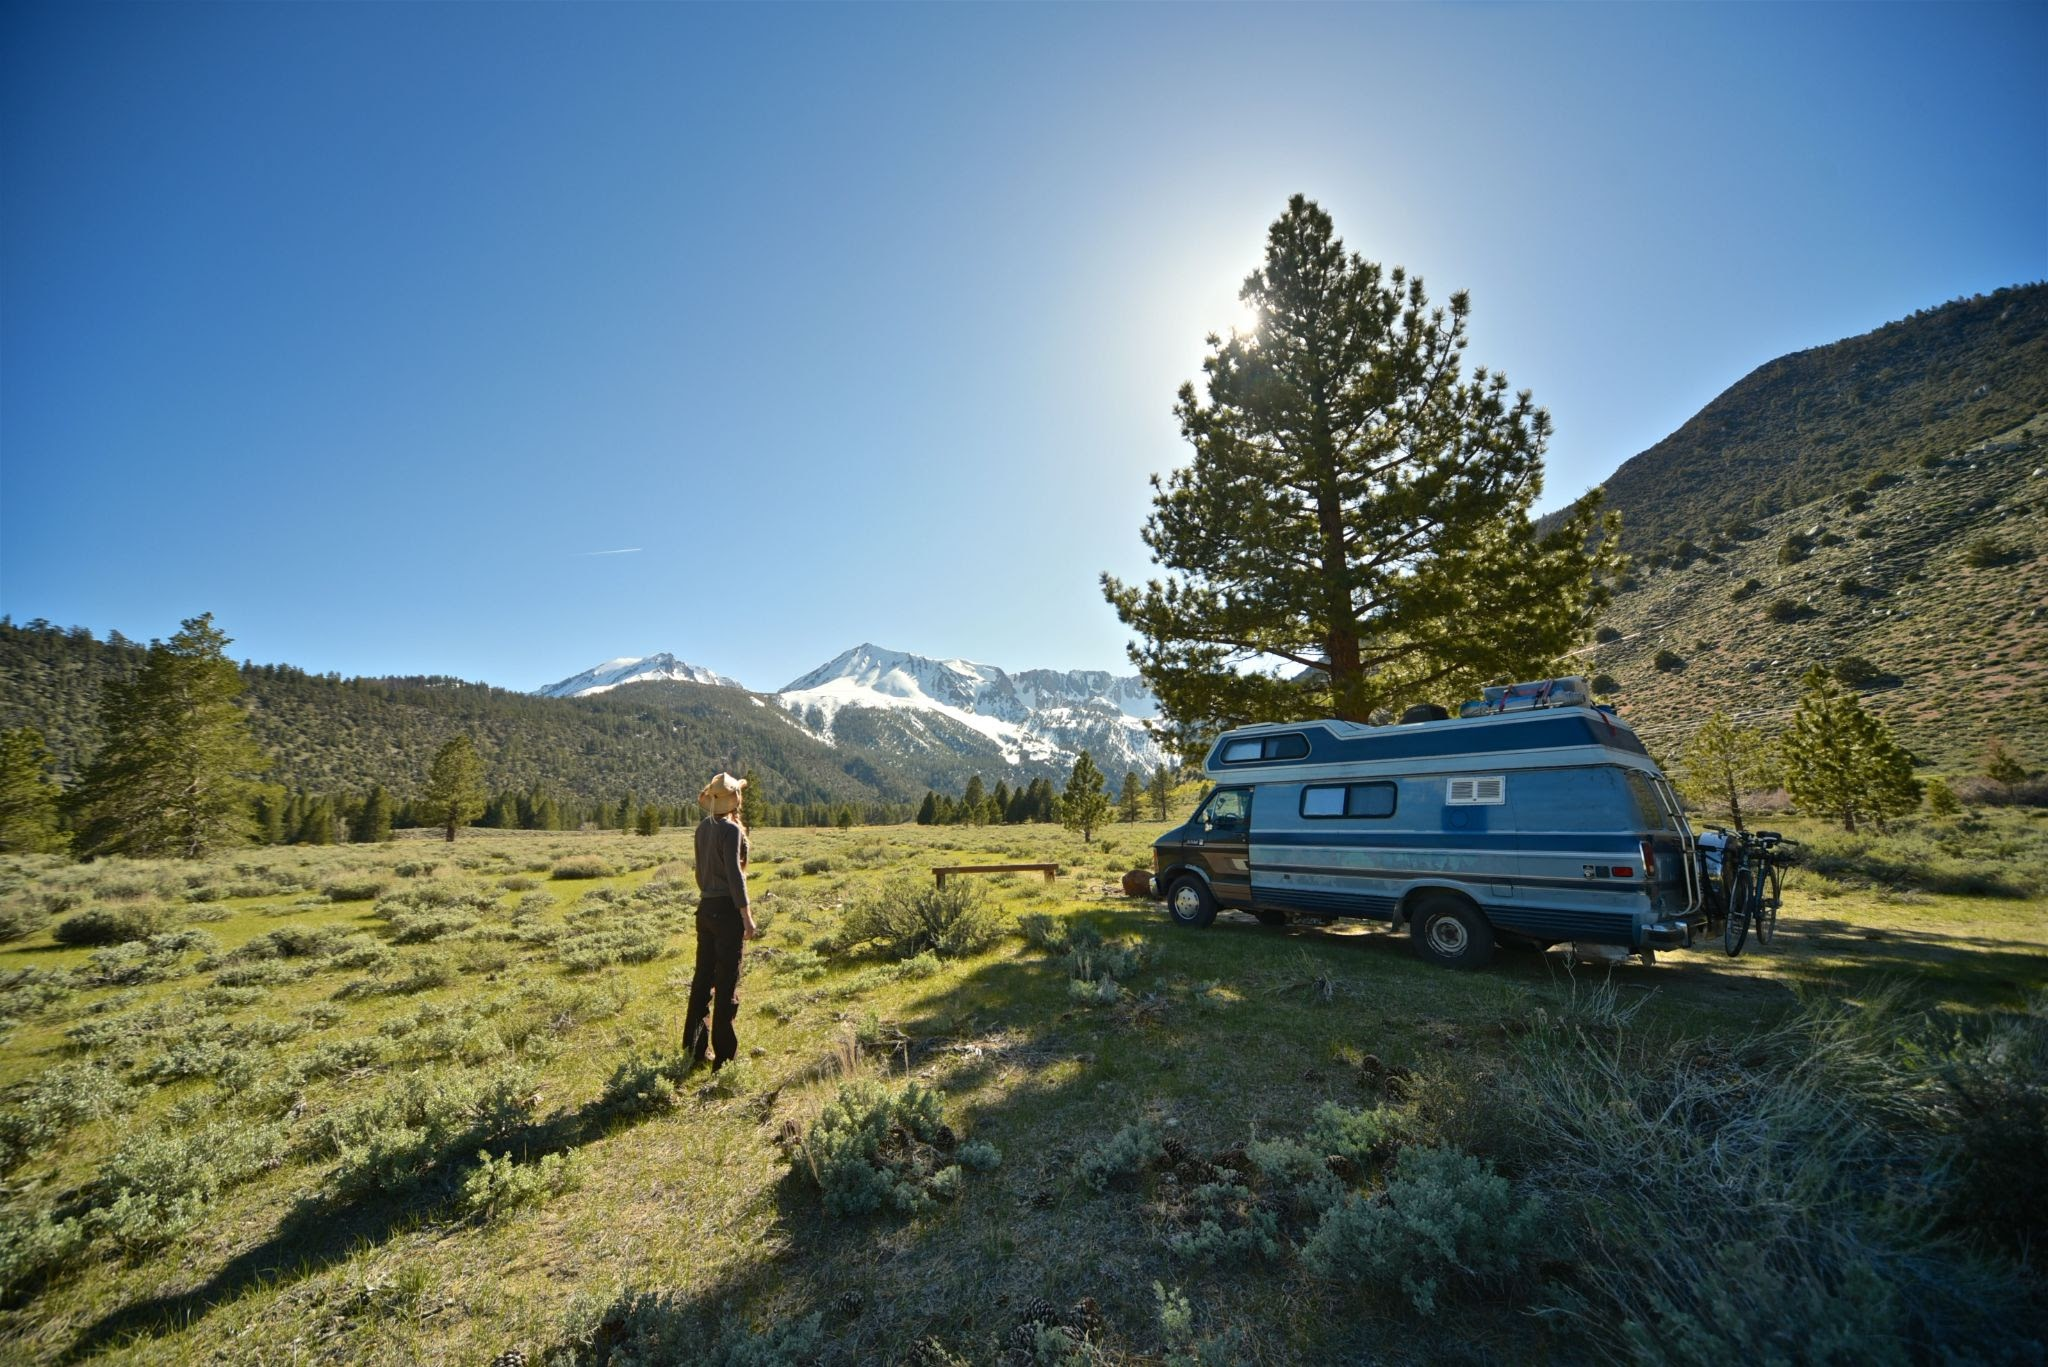 RV park and campground management